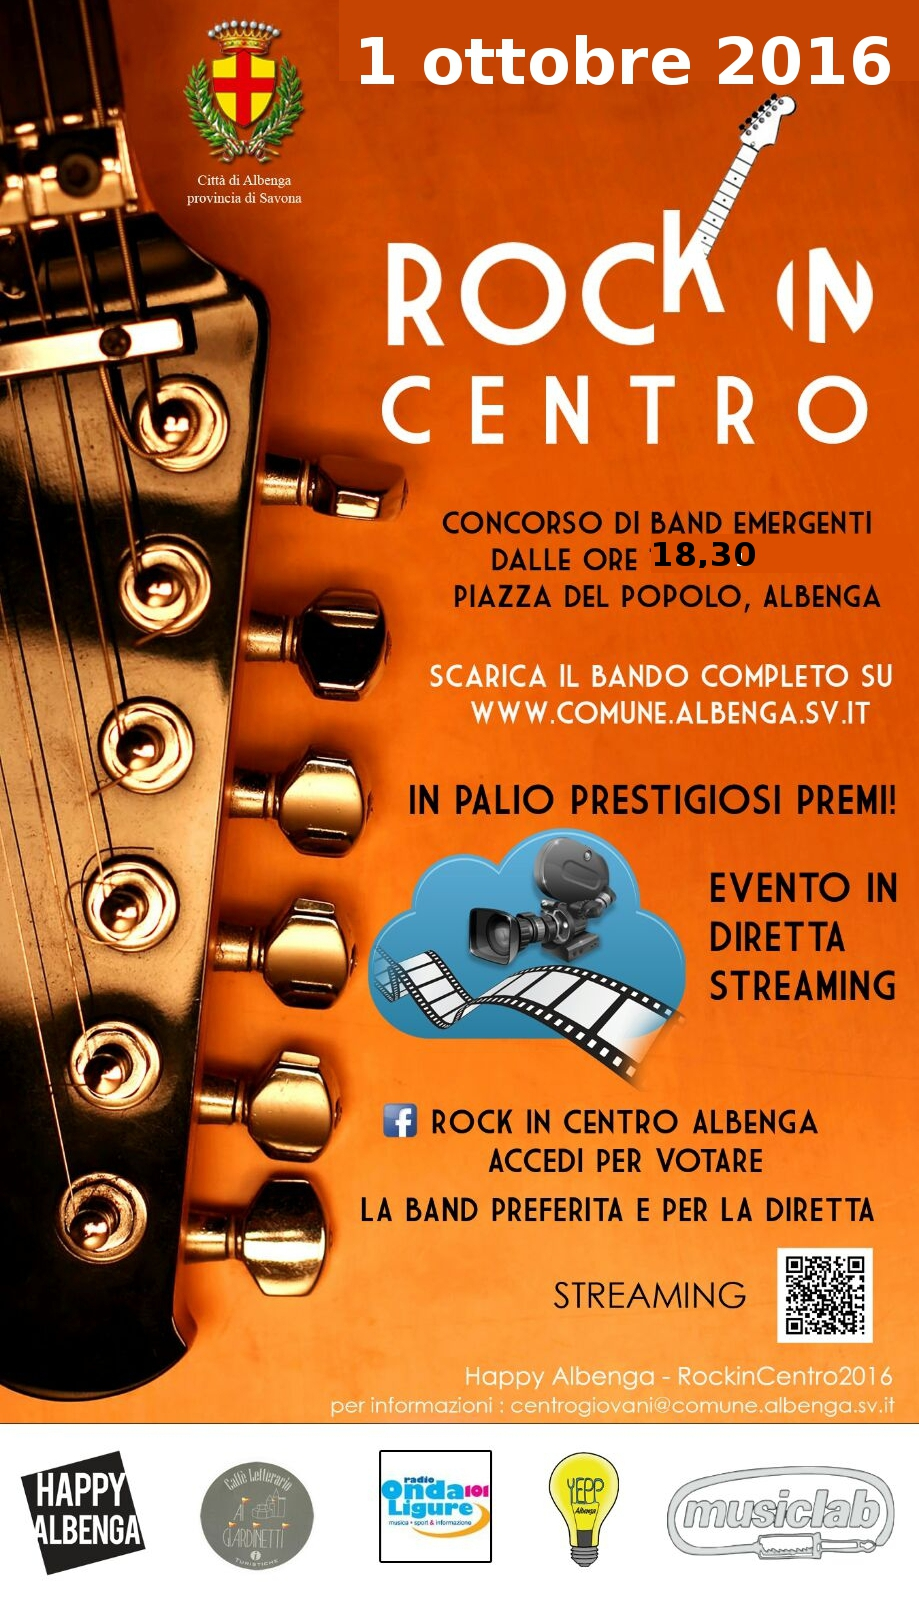 Rock in centro 2016